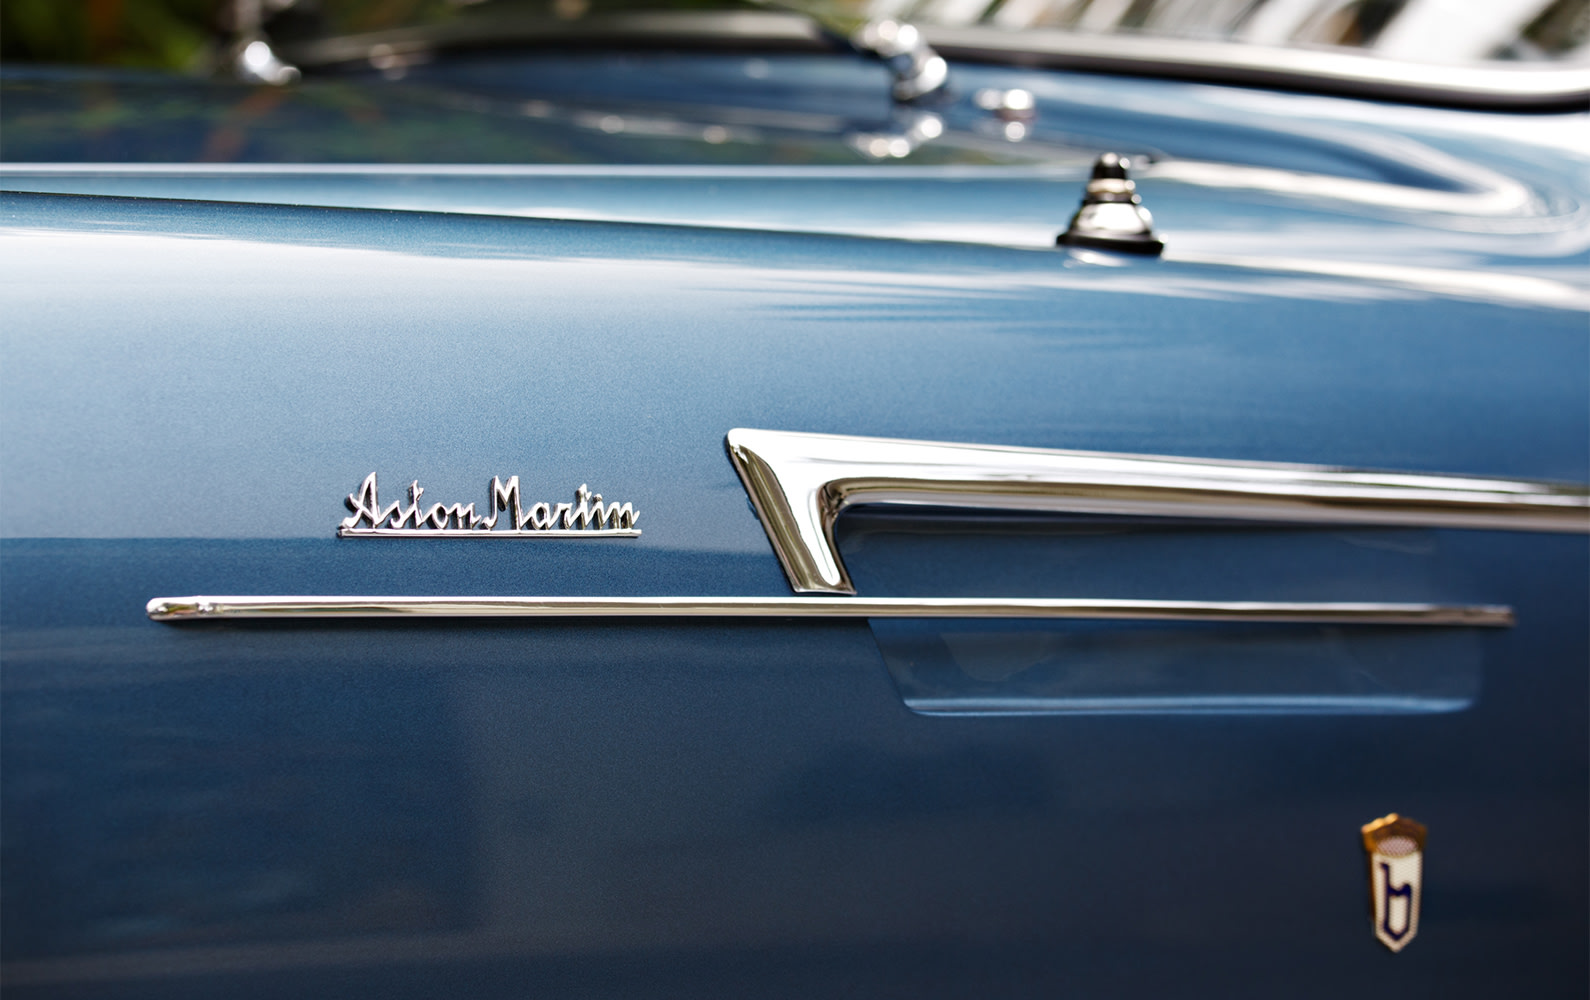 Aston Martin DB2 badging detail